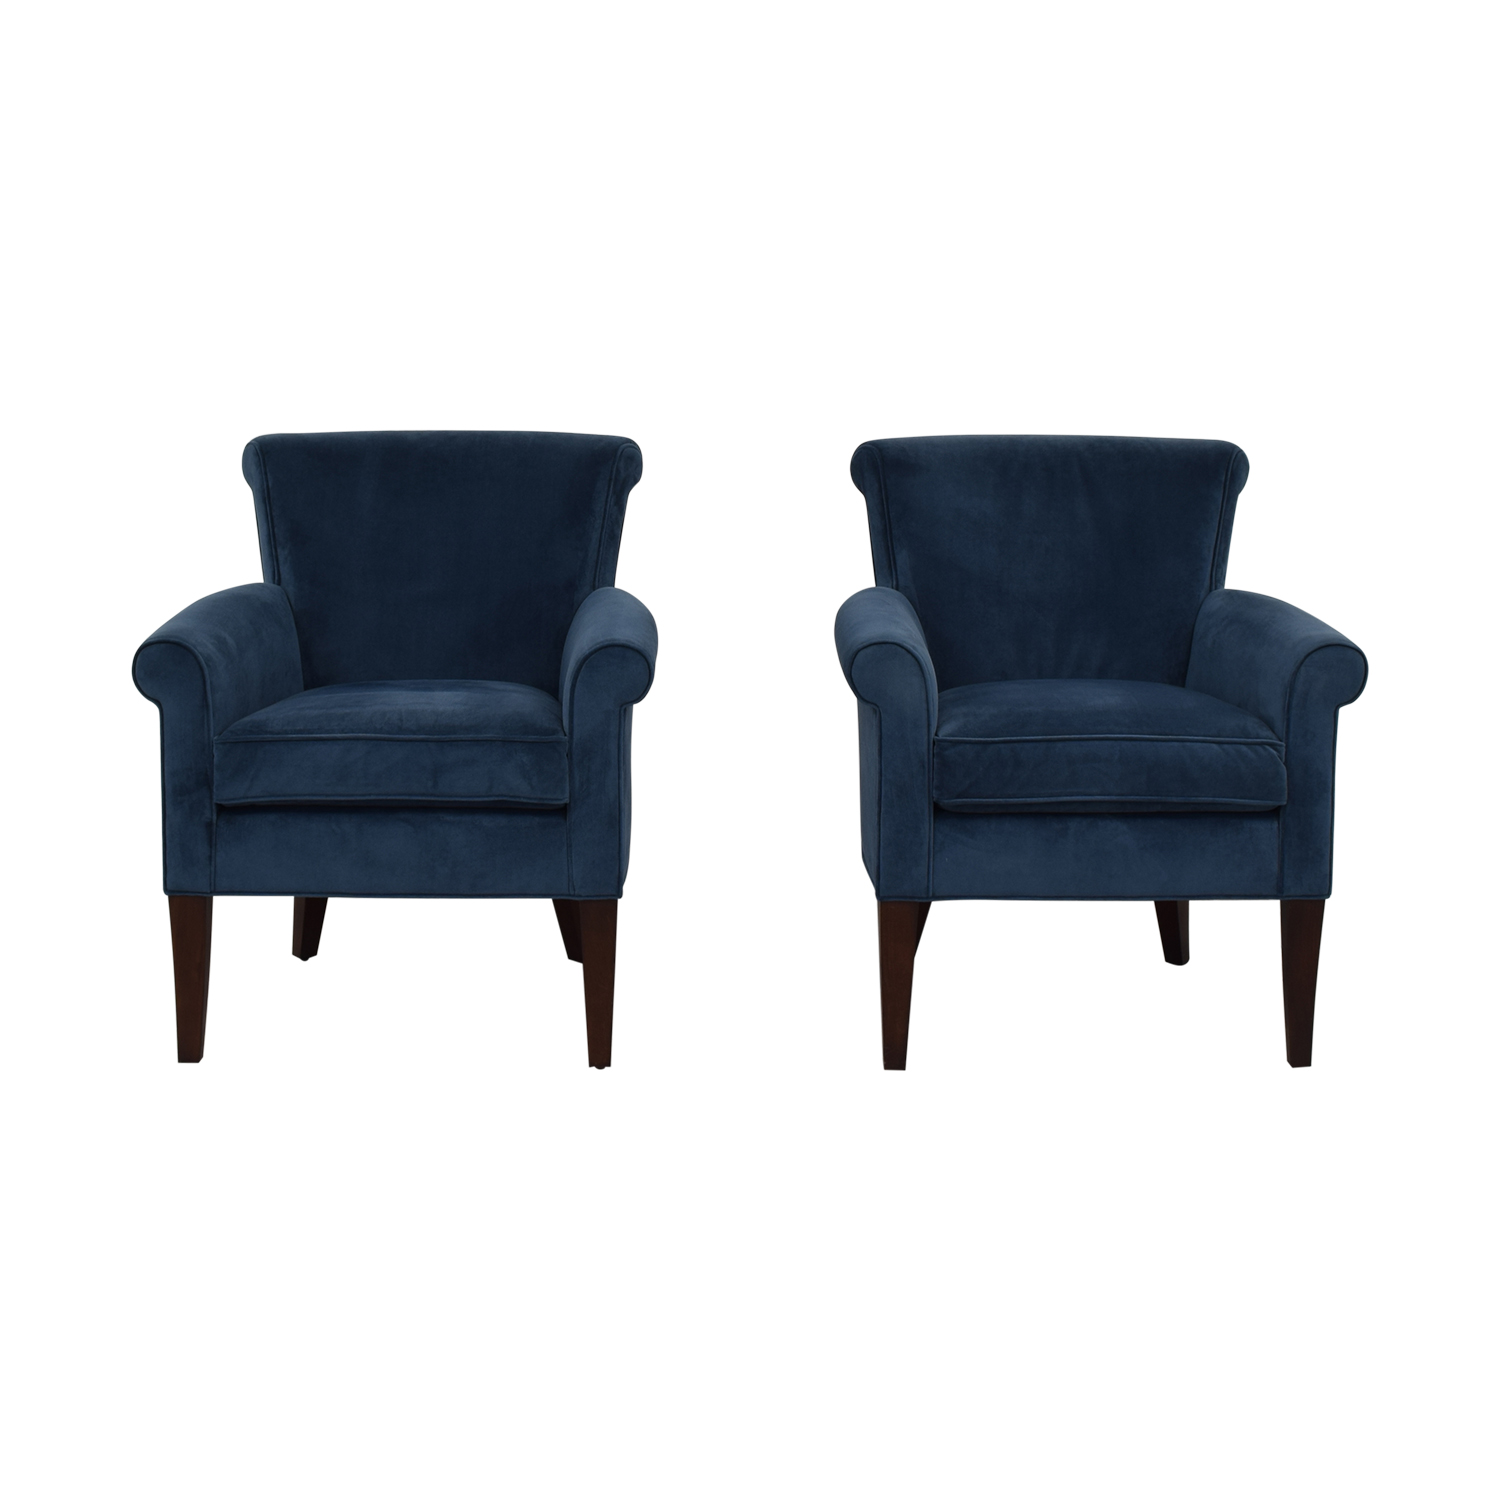 Arm Chairs 70 Off Stickley Furniture Stickley Furniture Sonoma Blue Accent Arm Chairs Chairs